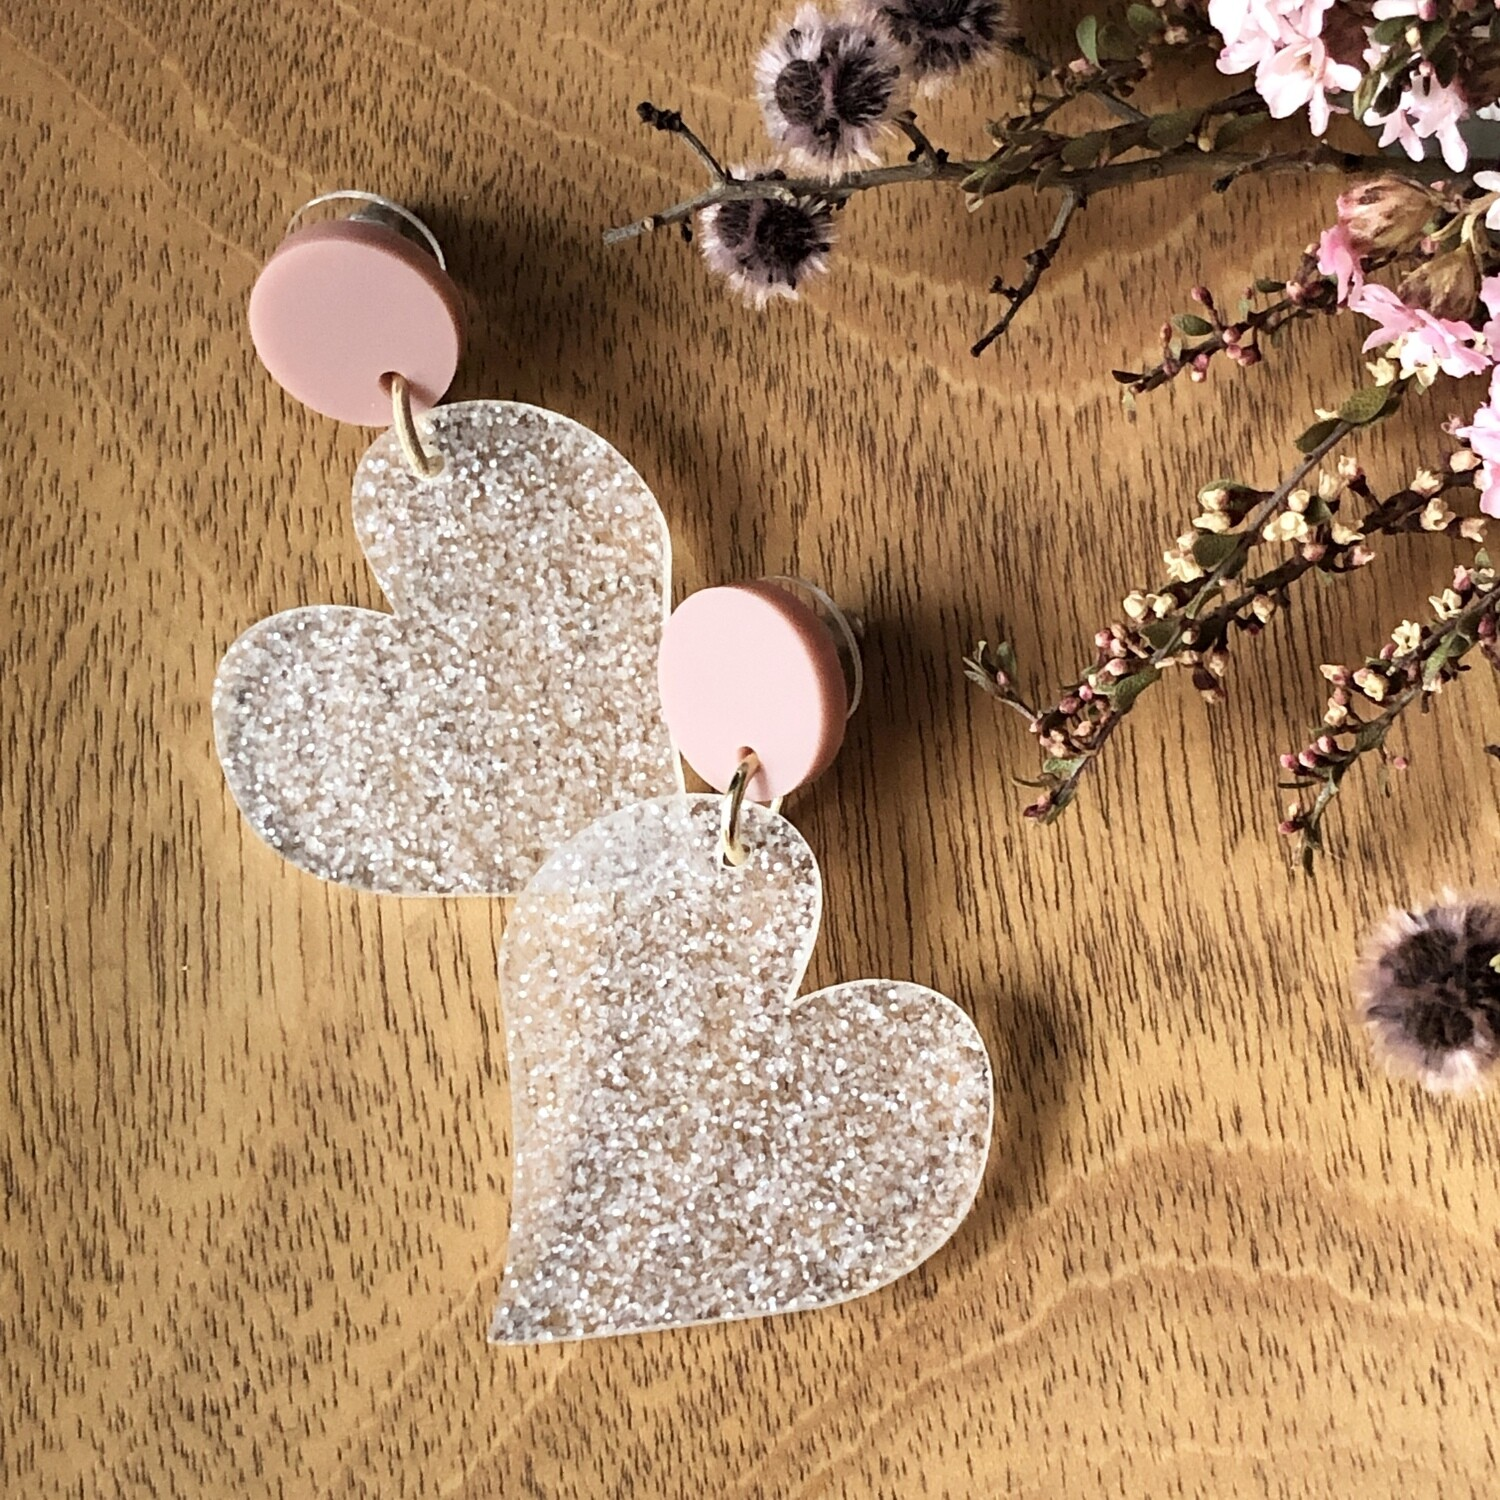 Glitter Heart earrings